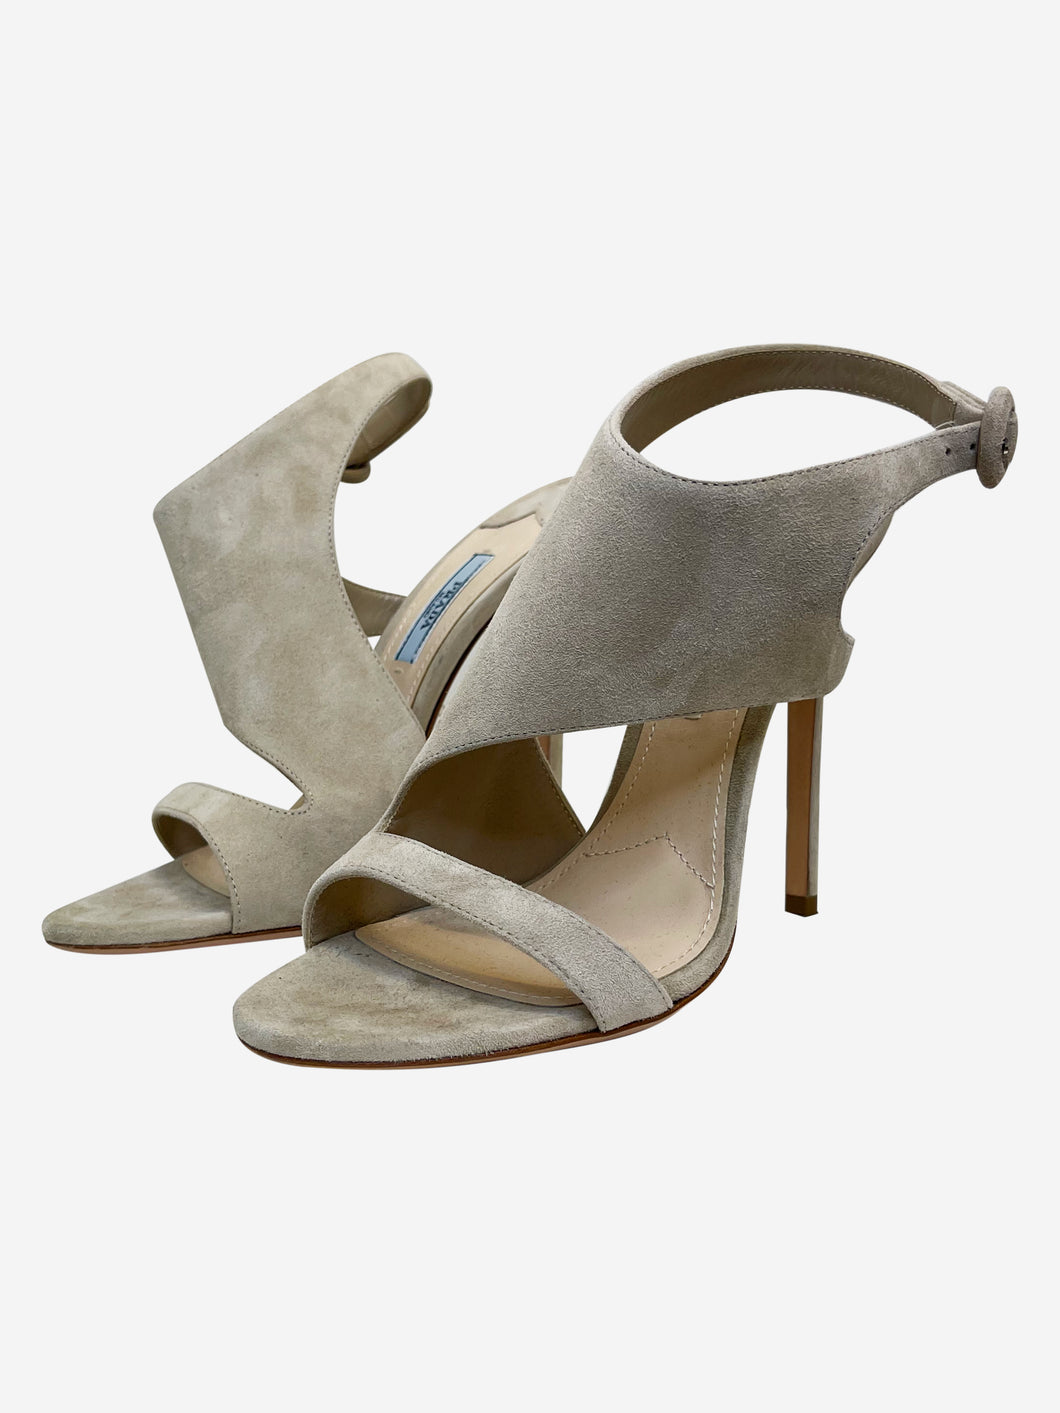 Nude suede wrap around peep toe heeled sandals - size EU 38 (UK 5)